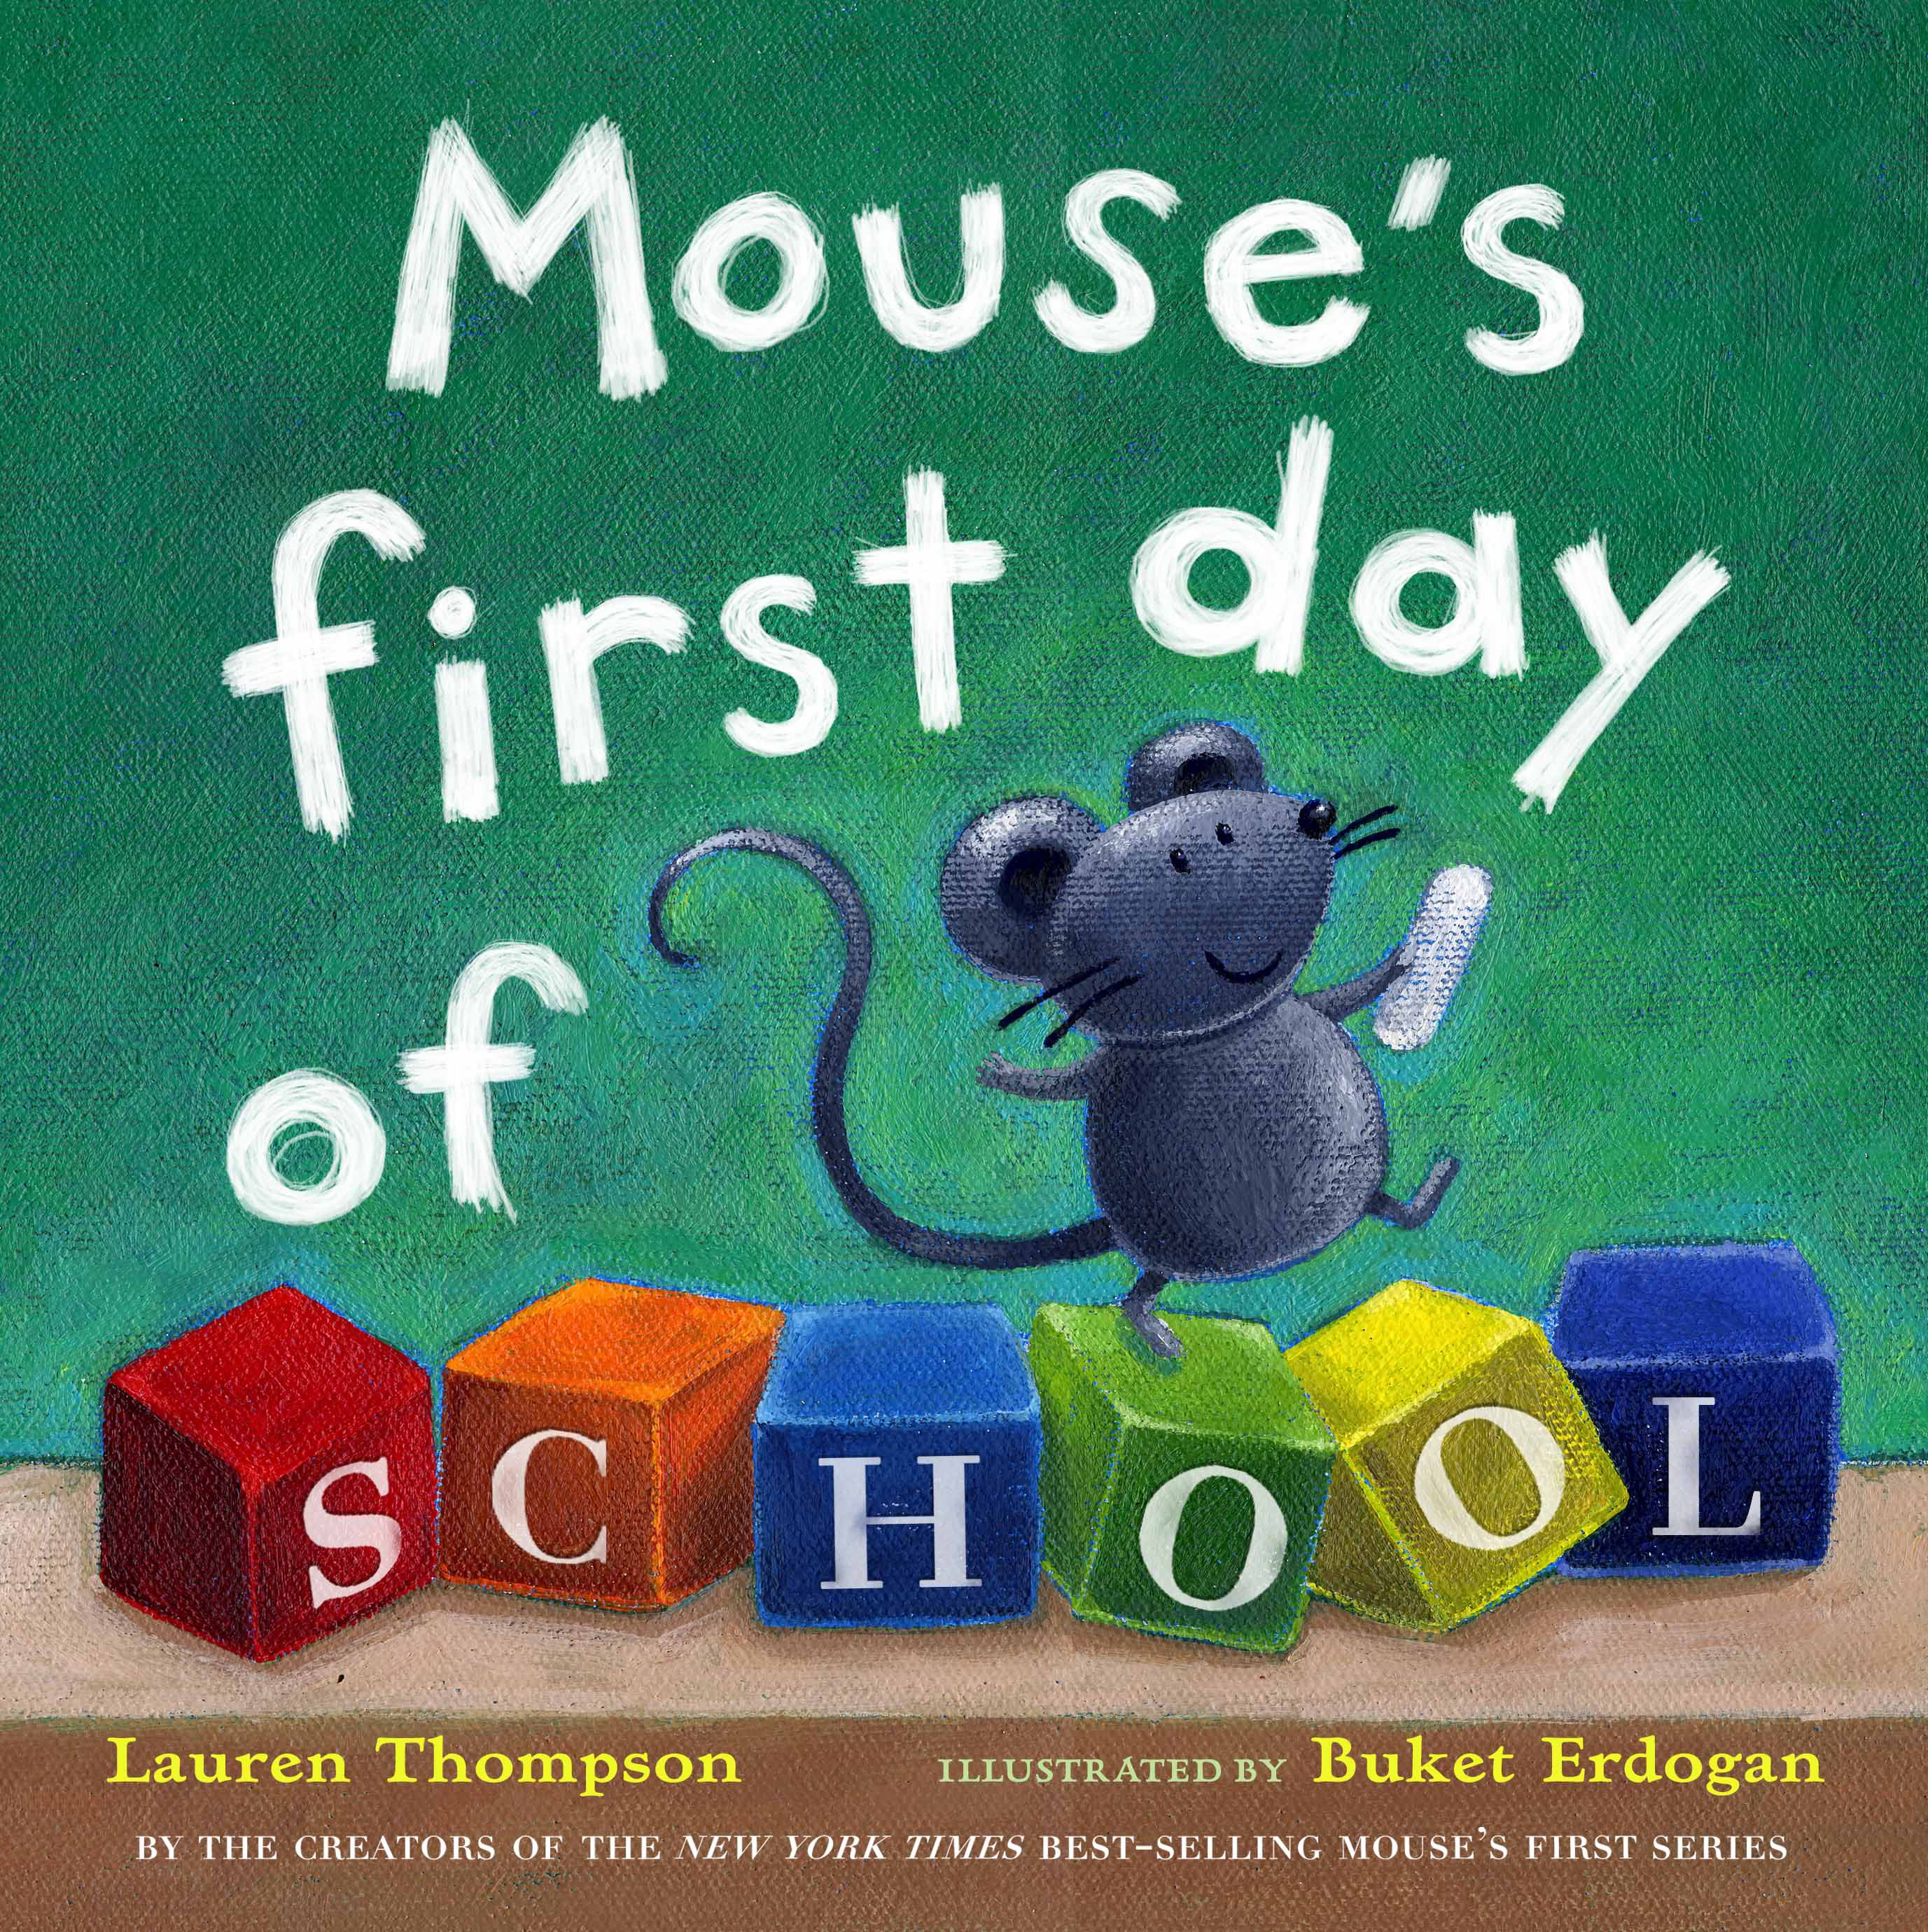 Mouses first day of school 9780689847271 hr